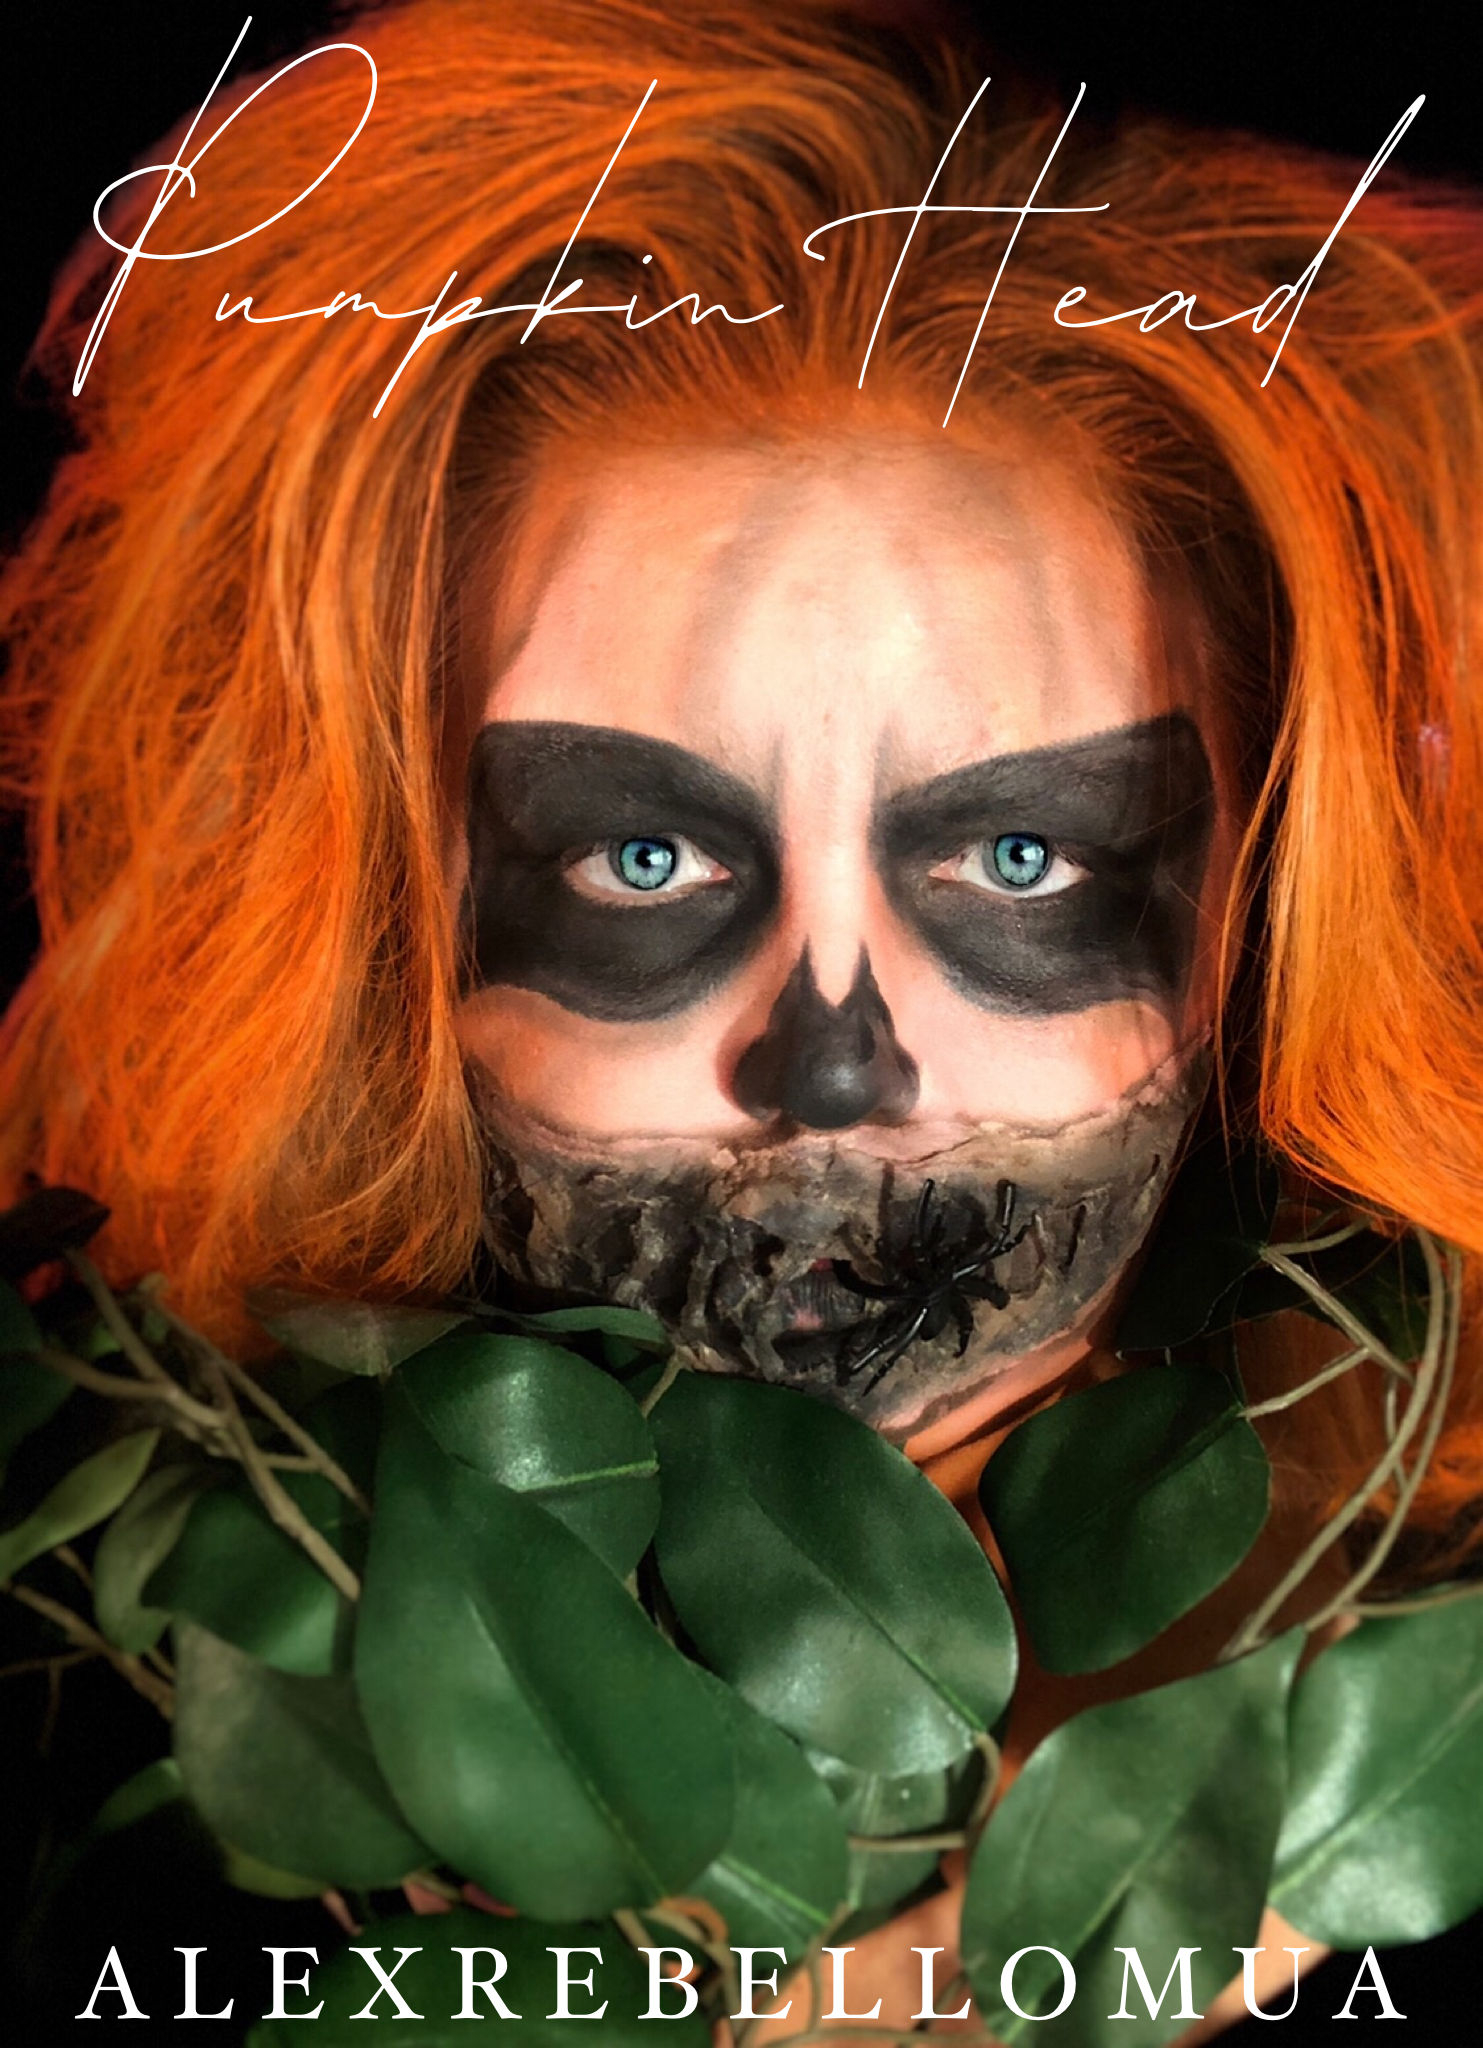 Pin by AlexRebelloMUA on Halloween makeup Halloween